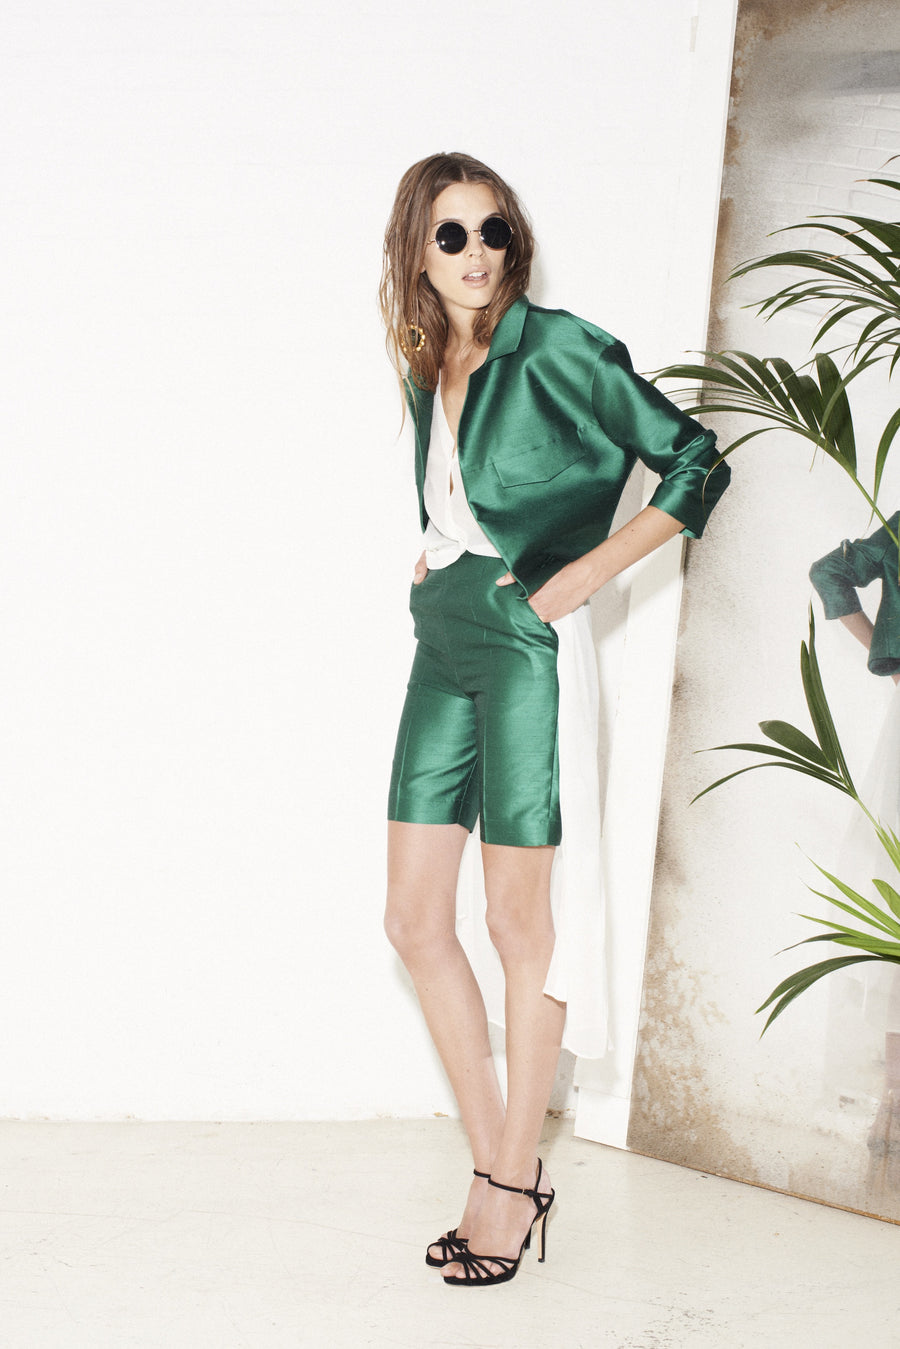 SS2013 / Look 18